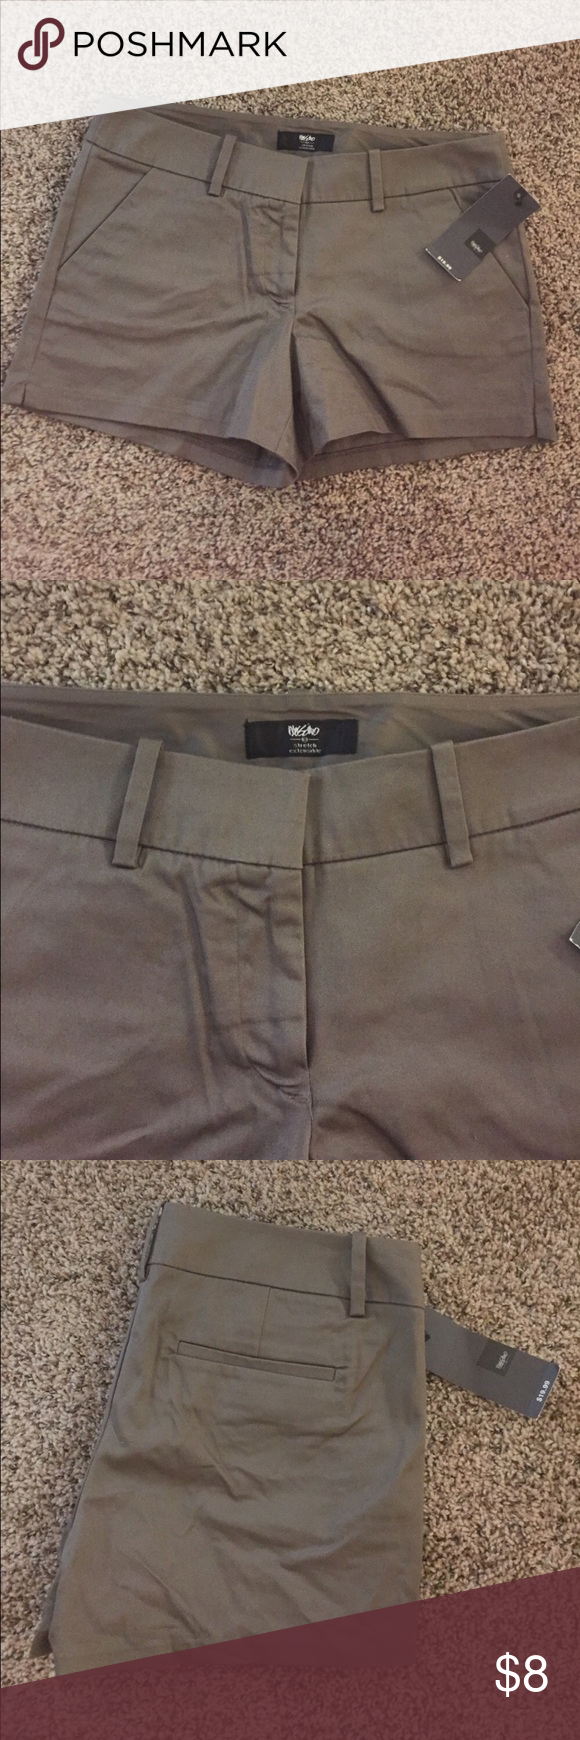 """NWT Mossimo Olive Green Shorts 16.5"""" waist and 3"""" inseam. 98% cotton and 2% spandex Mossimo Supply Co Shorts"""